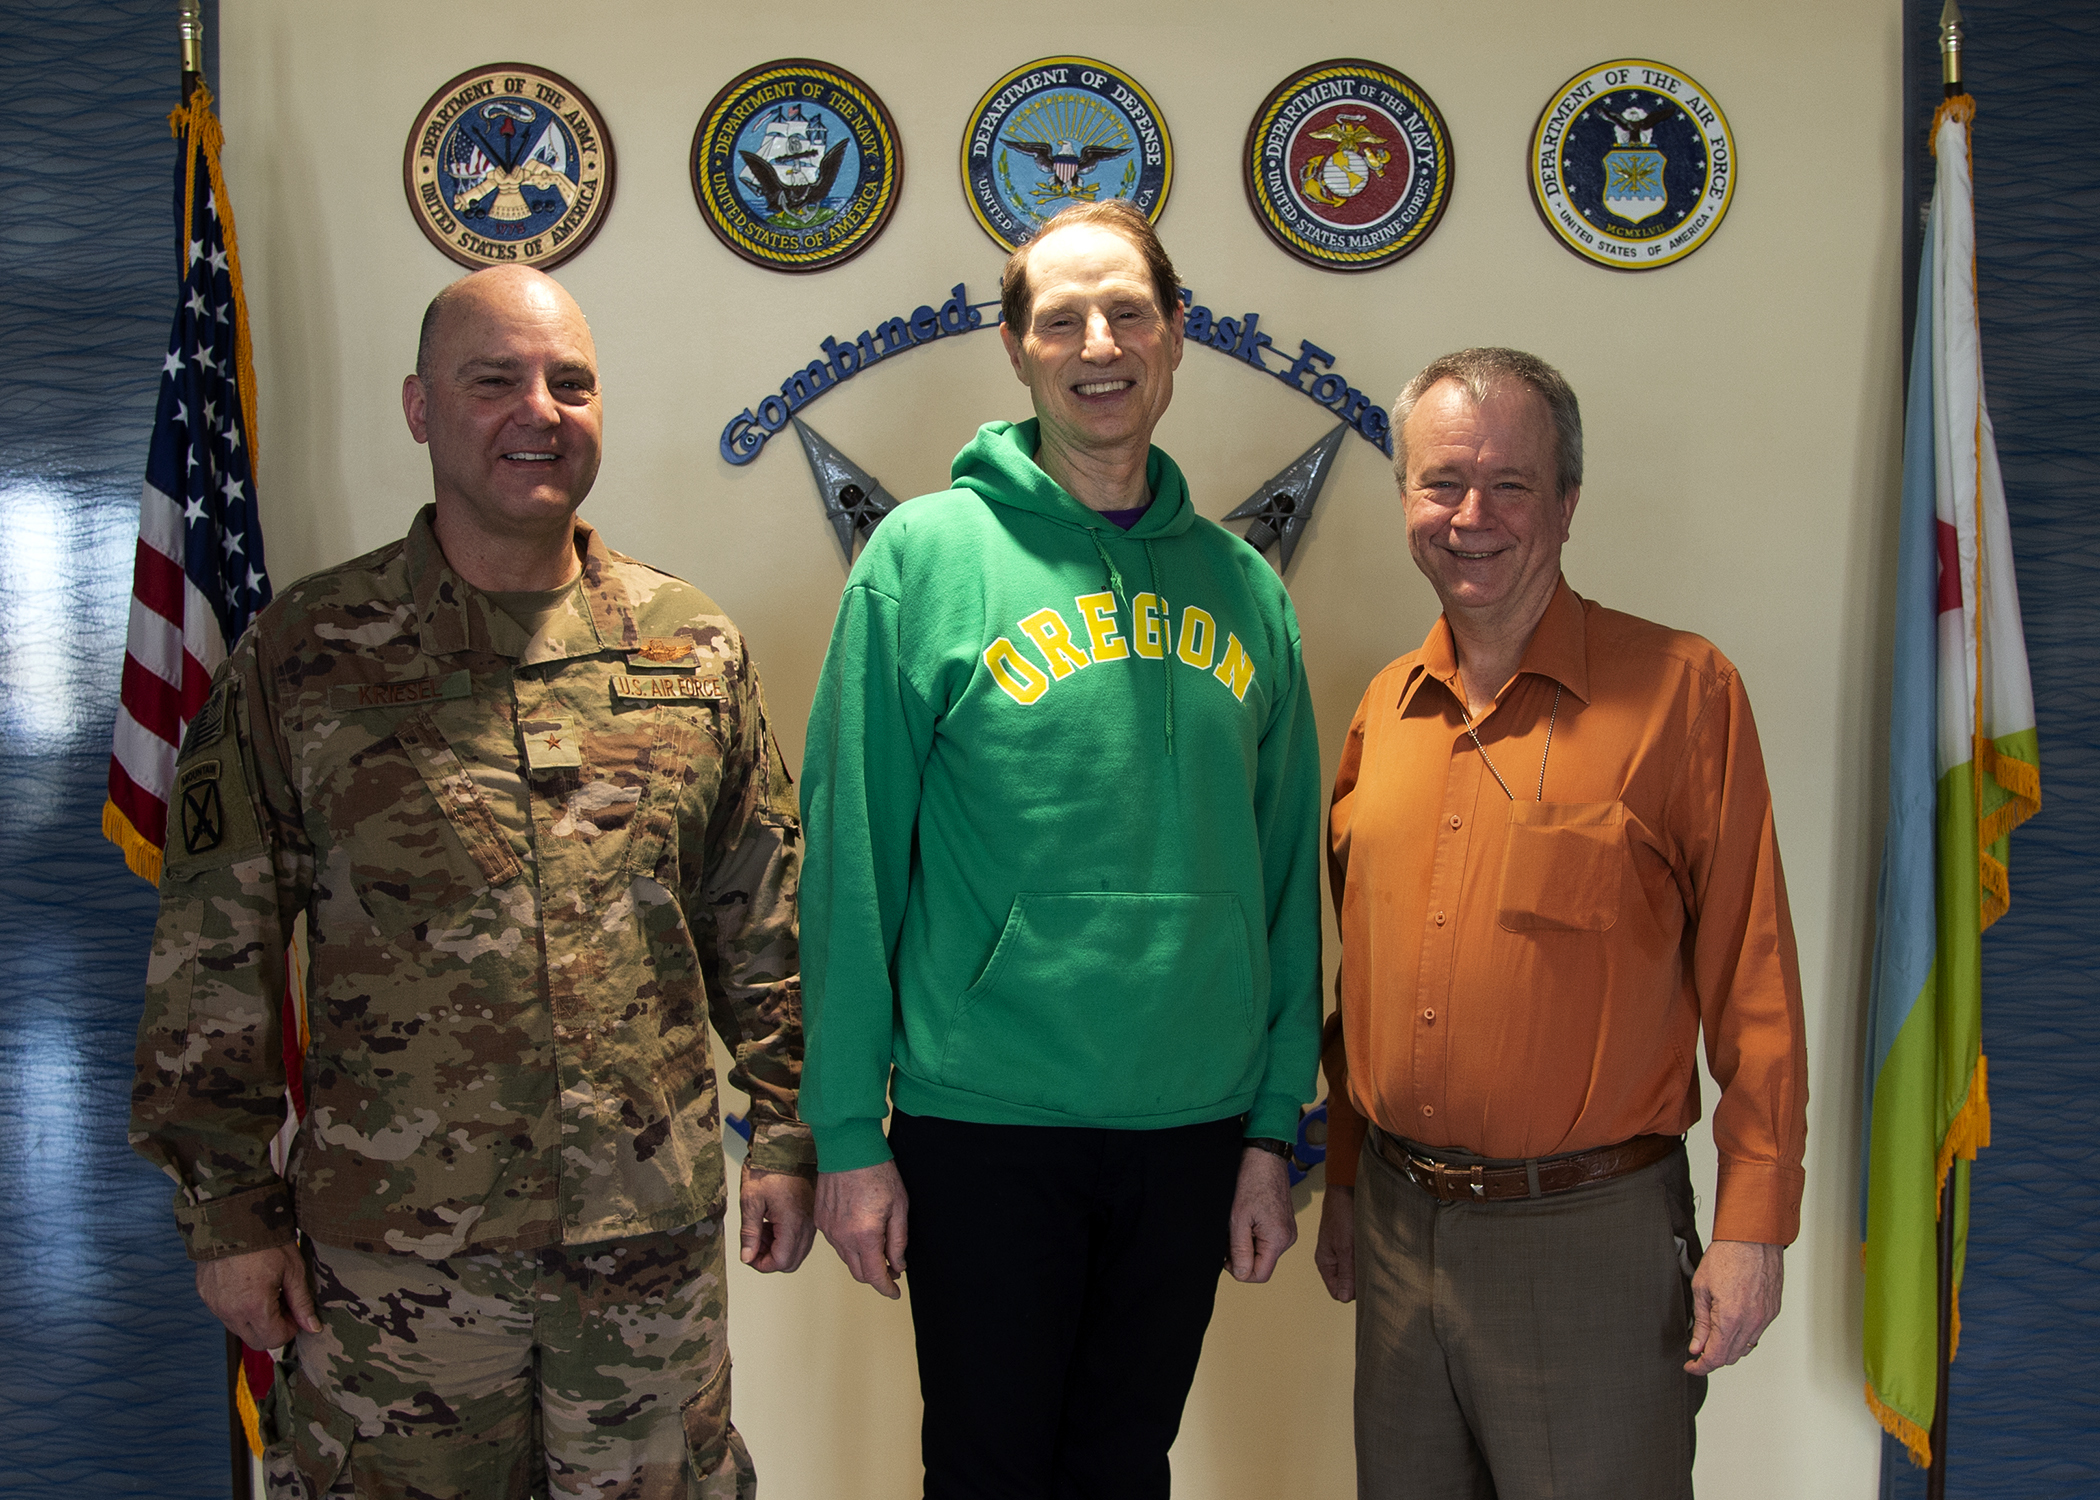 U.S. Air Force Brig. Gen. James R. Kriesel, left, deputy commanding general of Combined Joint Task Force-Horn of Africa (CJTF-HOA), U.S. Sen. Ron Wyden (D-OR), center, and U.S. Ambassador to Djibouti Larry André, right, pose for a photo at CJTF-HOA before a briefing at Camp Lemonnier, Djibouti, April 26, 2019. Wyden traveled to Djibouti to visit U.S. forces and embassy officials and to meet with national defense leaders to understand the current posture of readiness and security. (U.S. Navy photo by Mass Communication Specialist 1st Class Nick Scott)